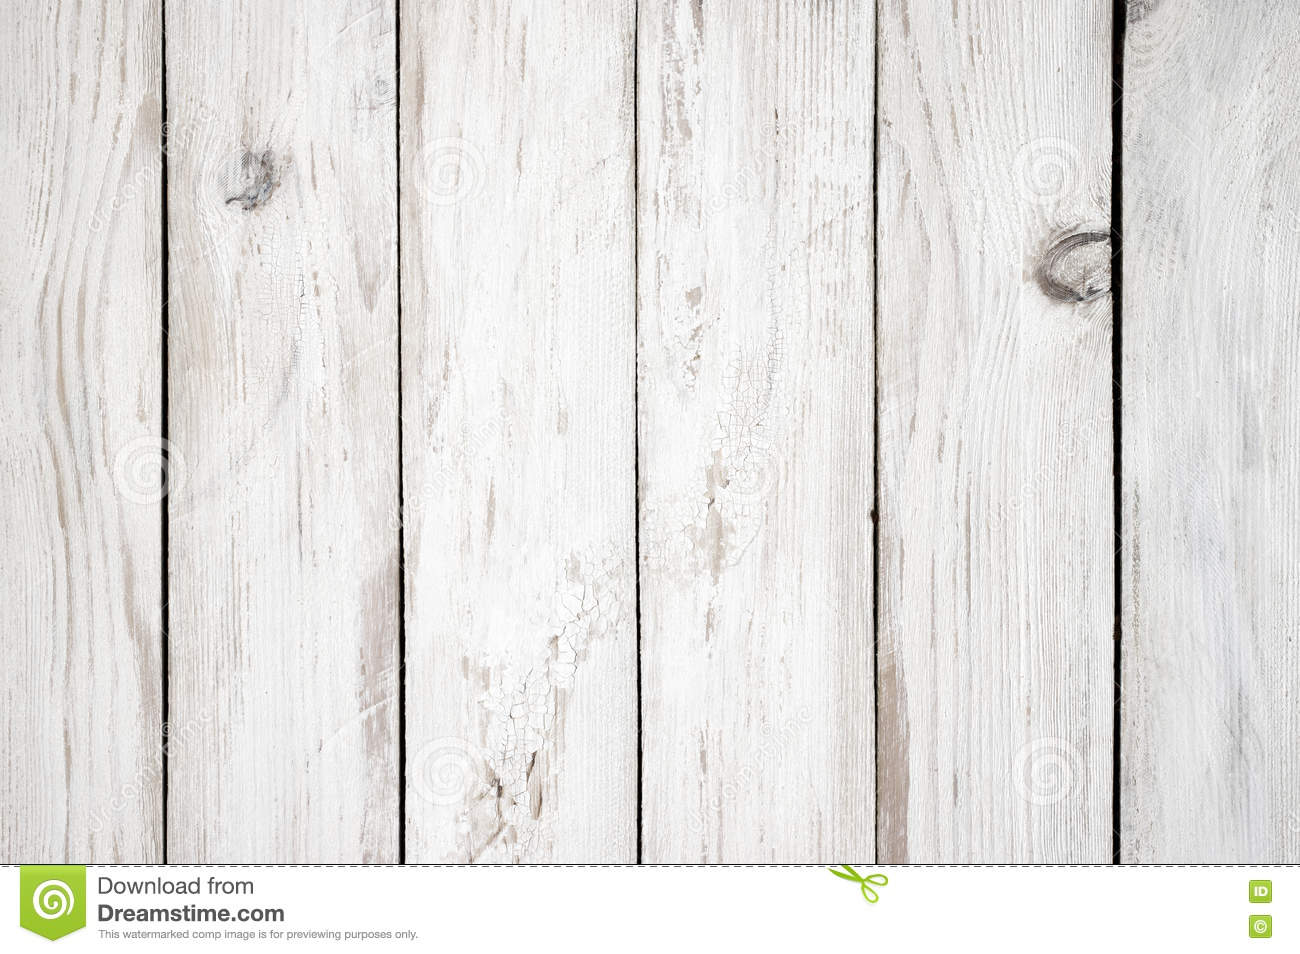 Genial Download White Painted Wood Texture Stock Photo. Image Of Decorative    74315084